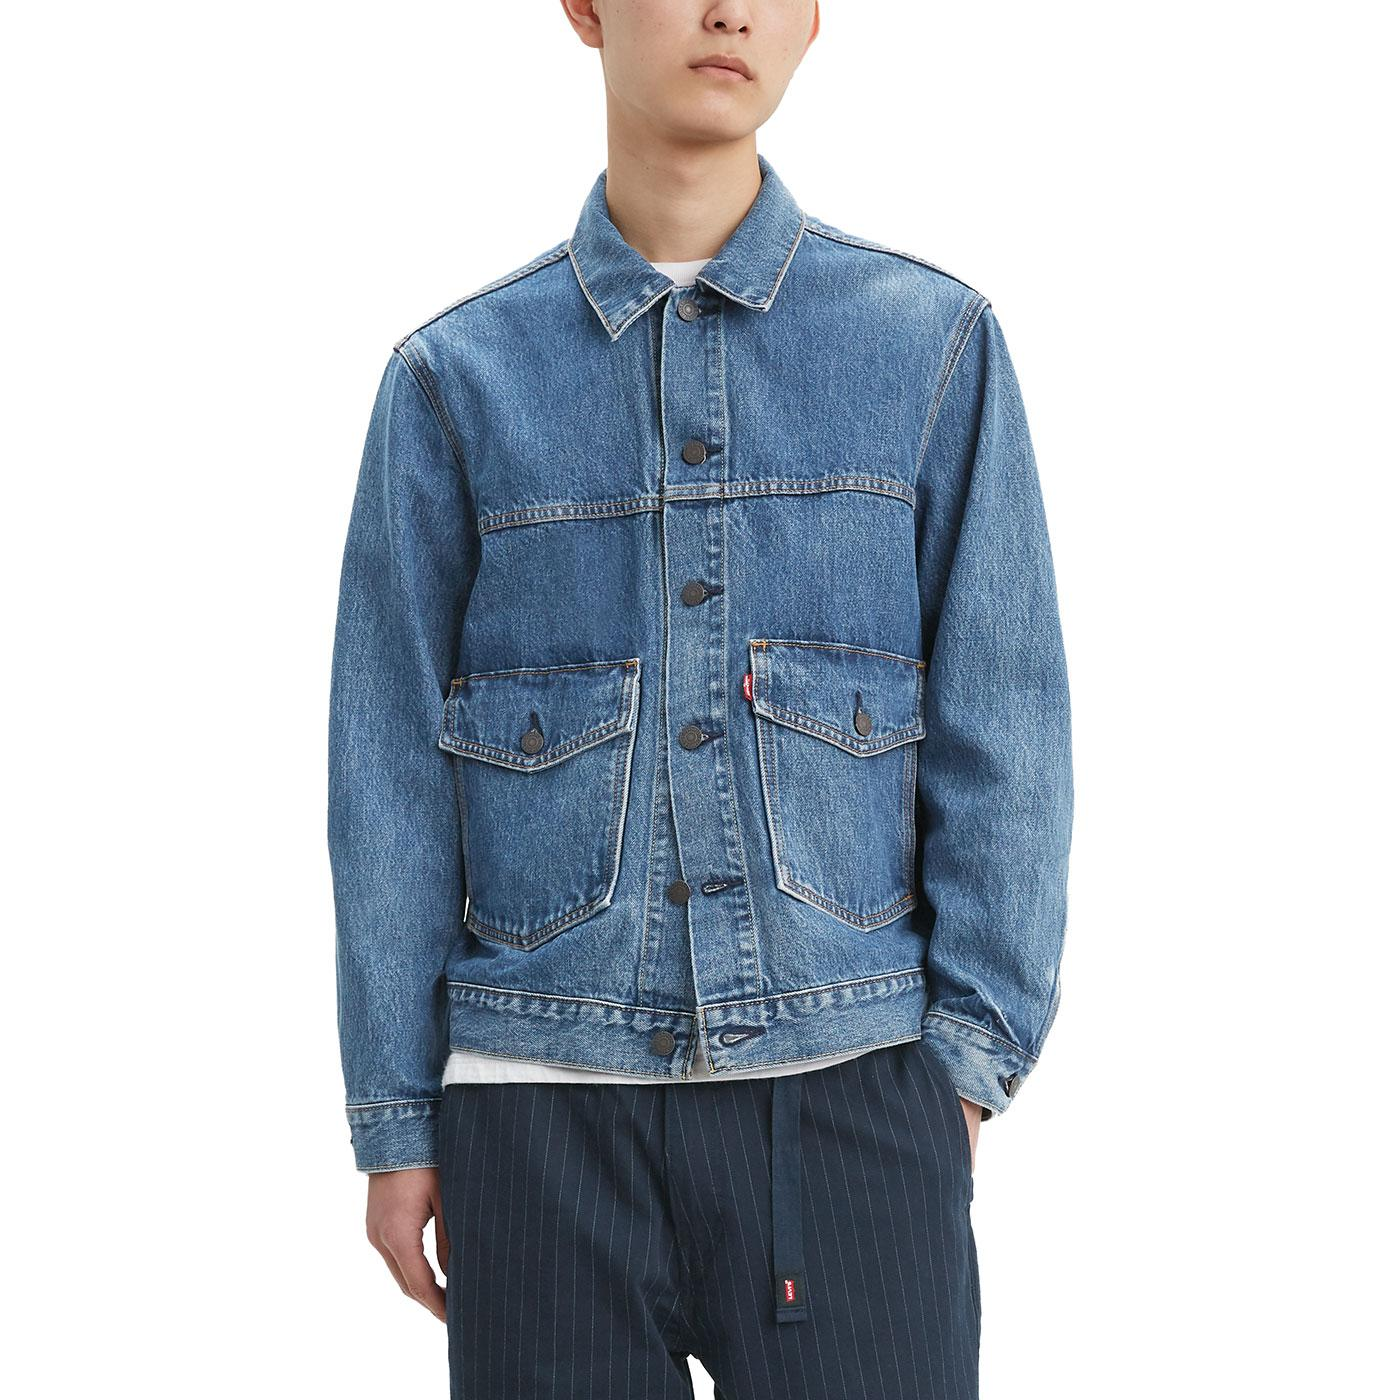 LEVI'S Mod Patch Pocket Trucker Jacket (Gear Box)